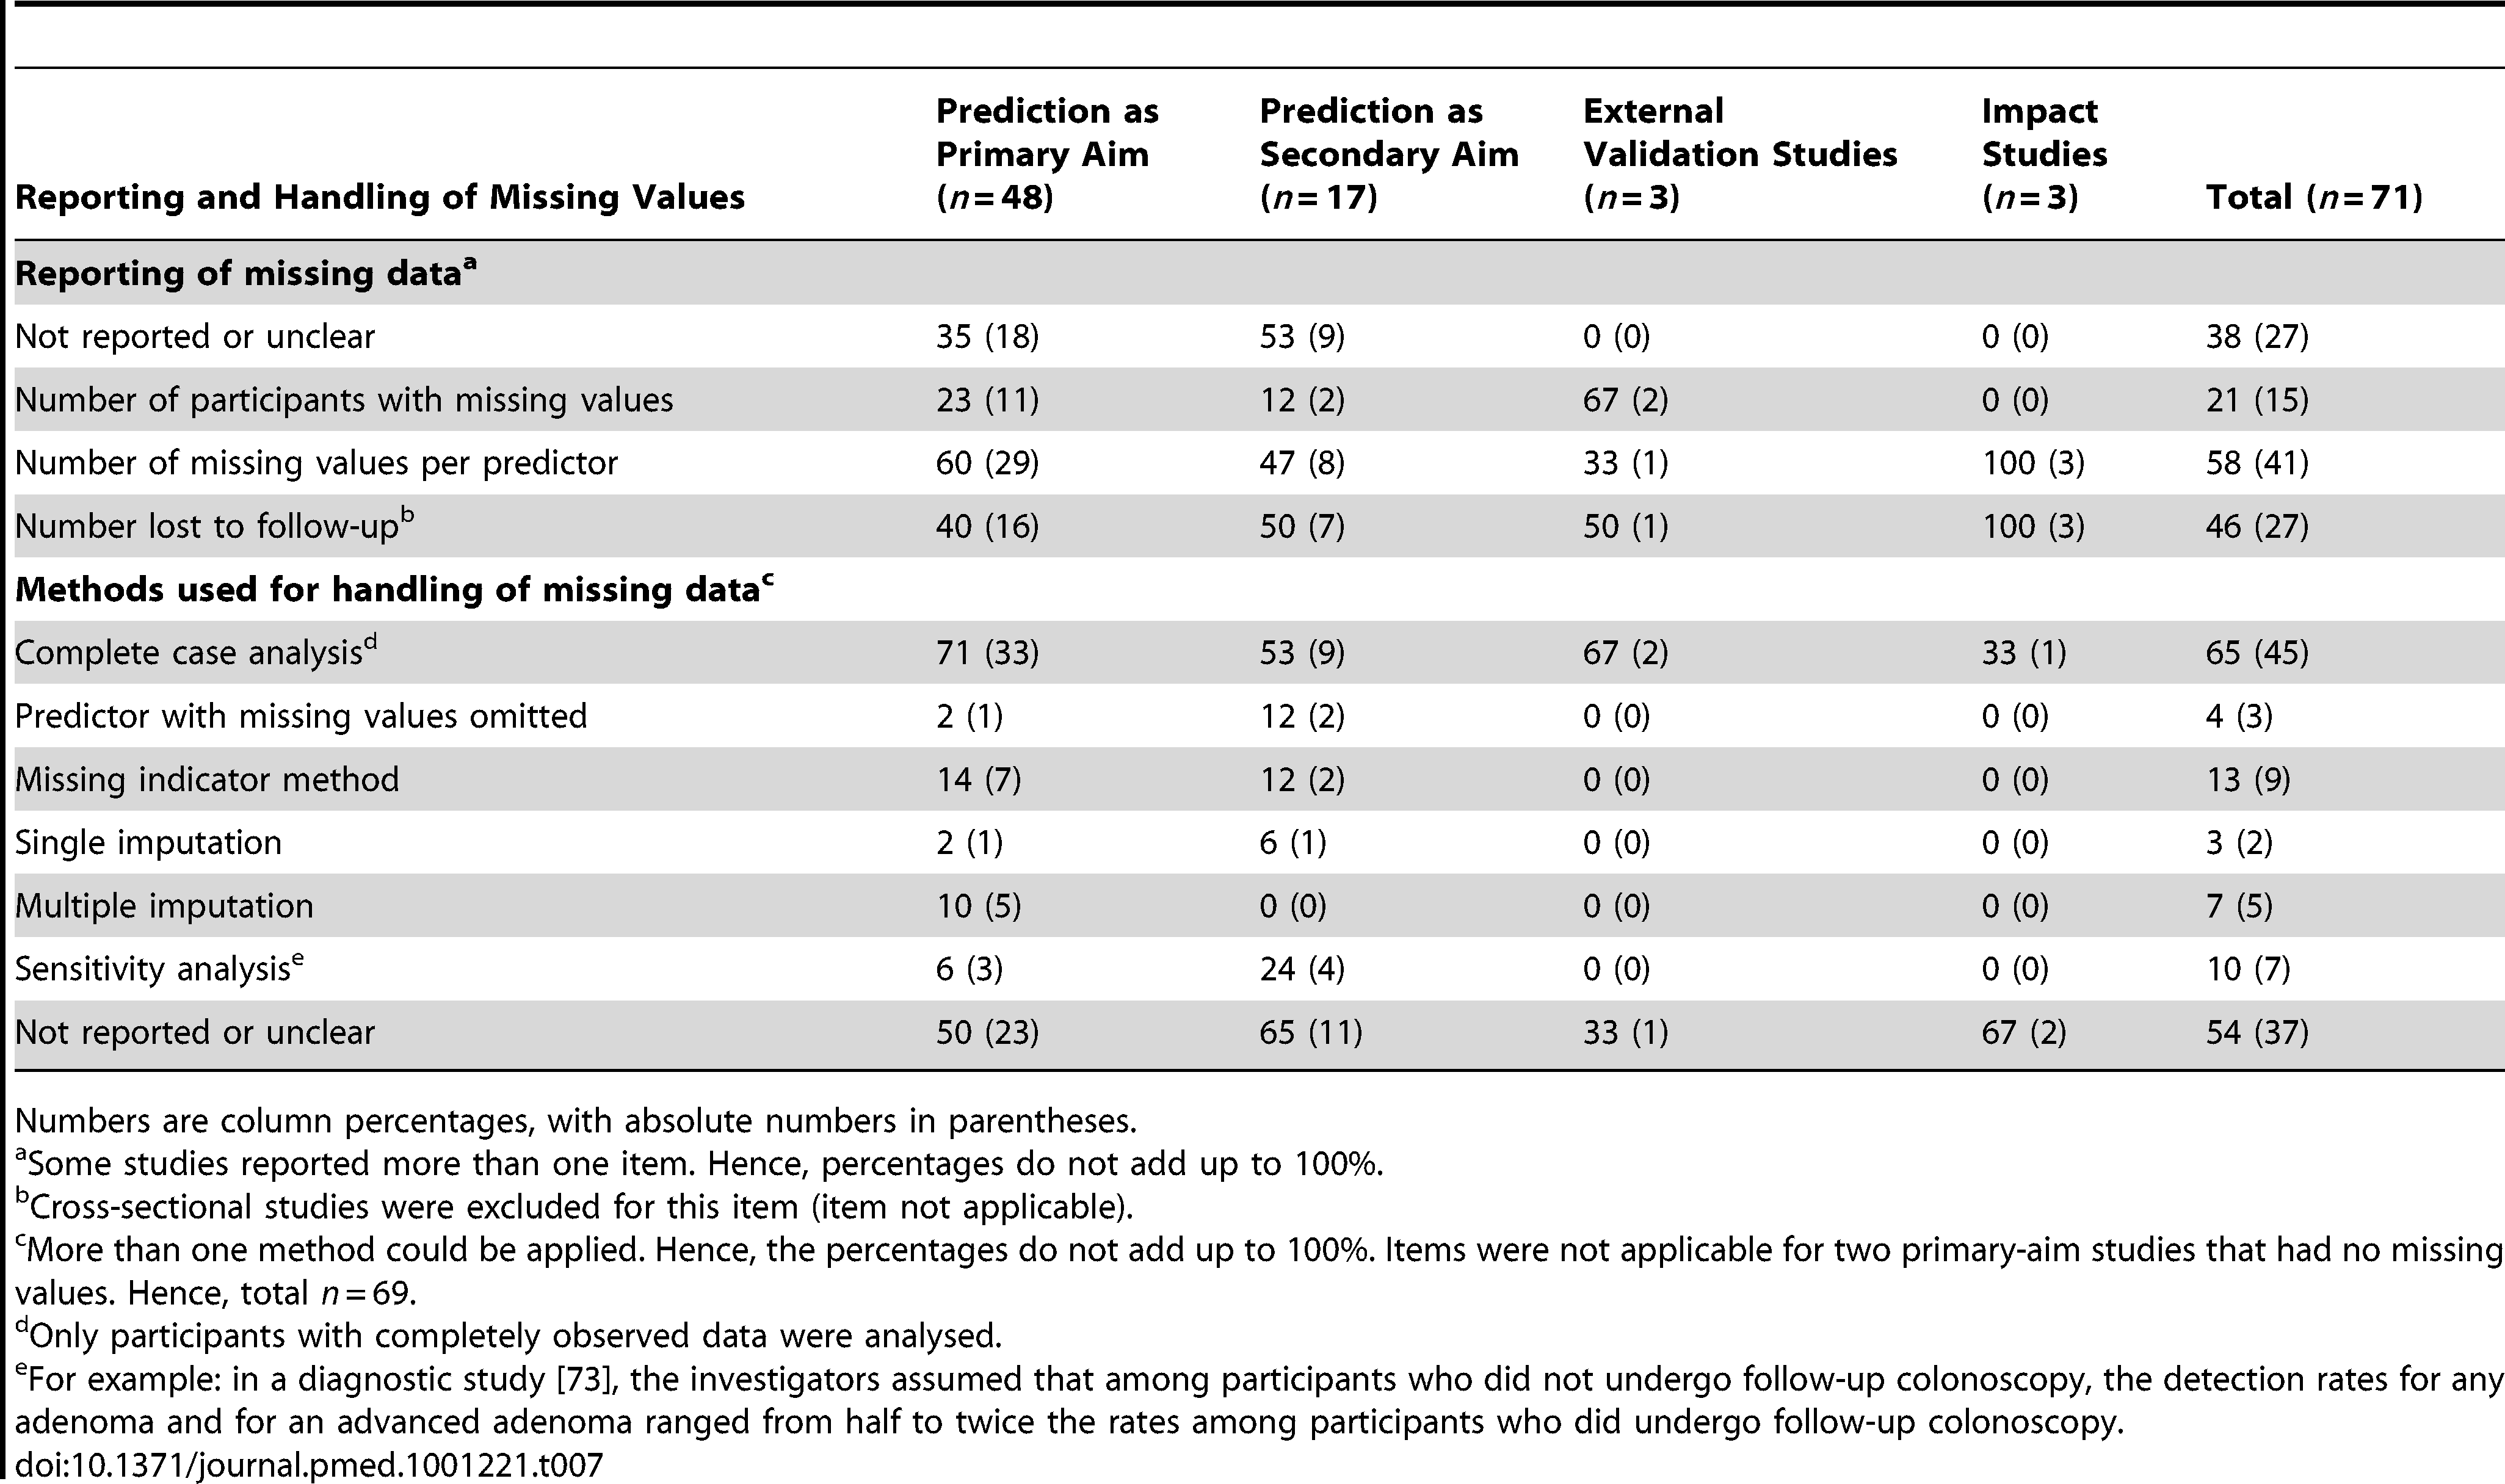 Handling of missing values, stratified by whether prediction was the primary or secondary study aim.